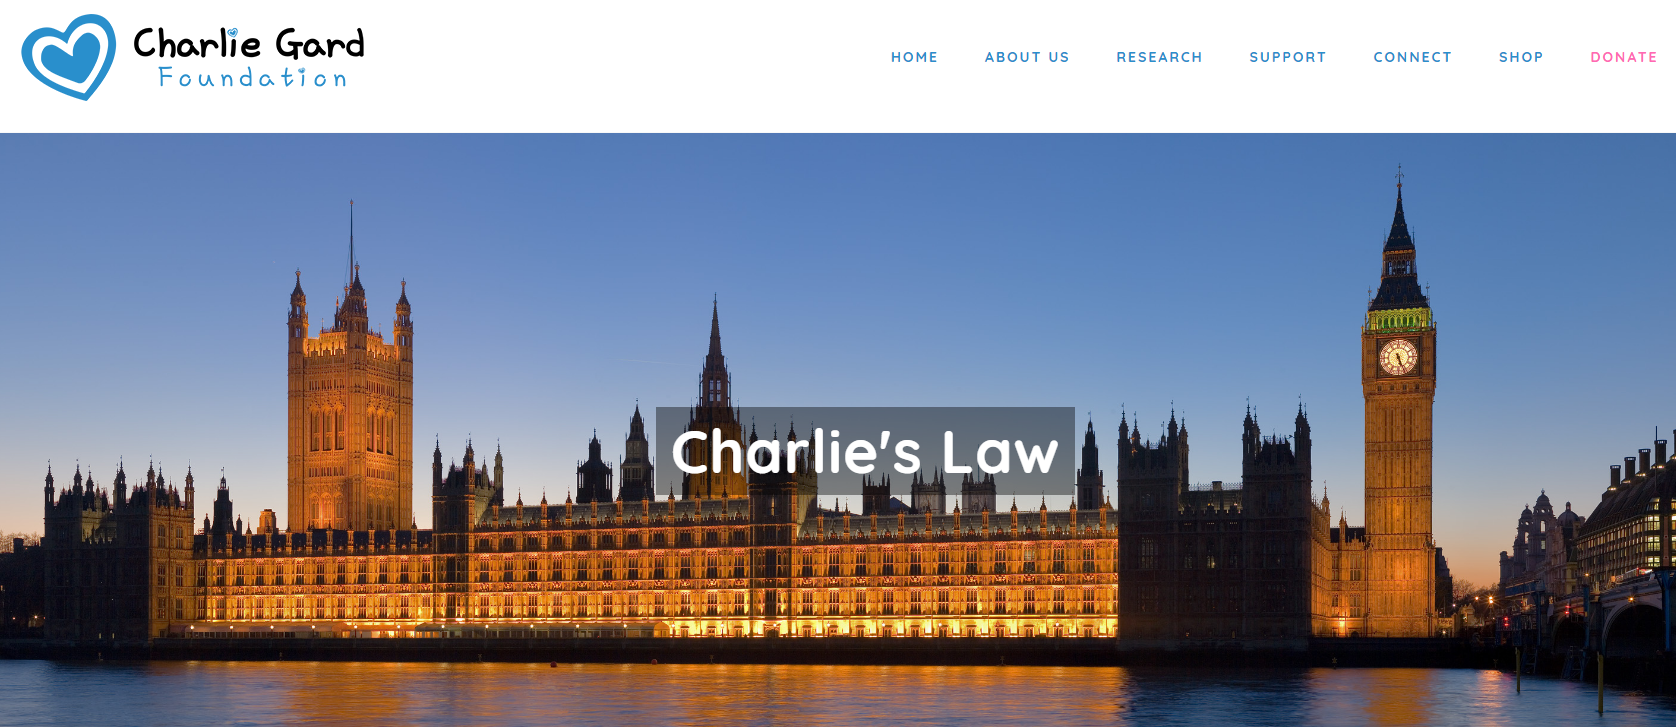 Charlie's Law